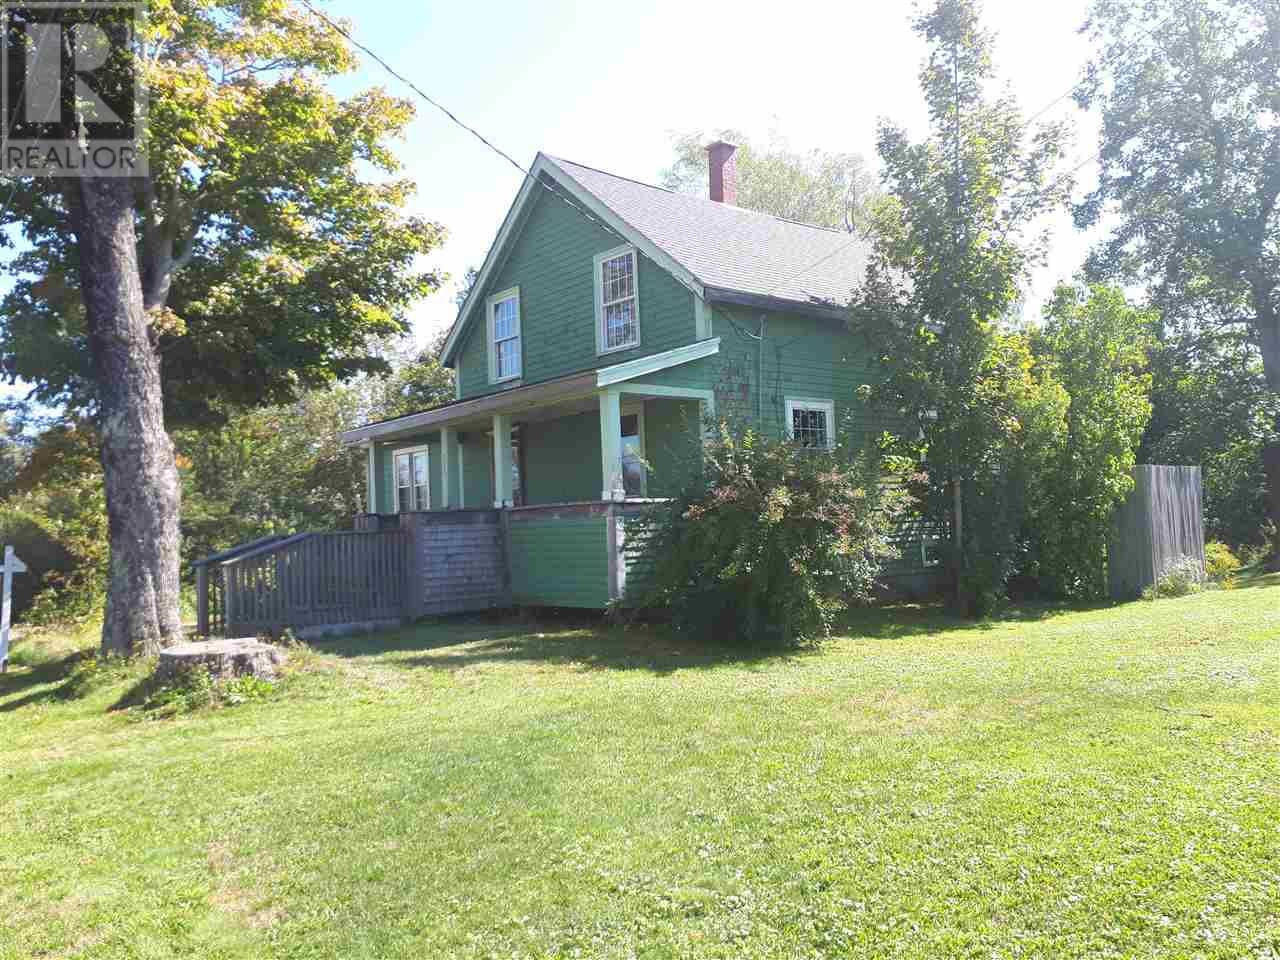 House for sale at 215 Main St Berwick Nova Scotia - MLS: 201922591